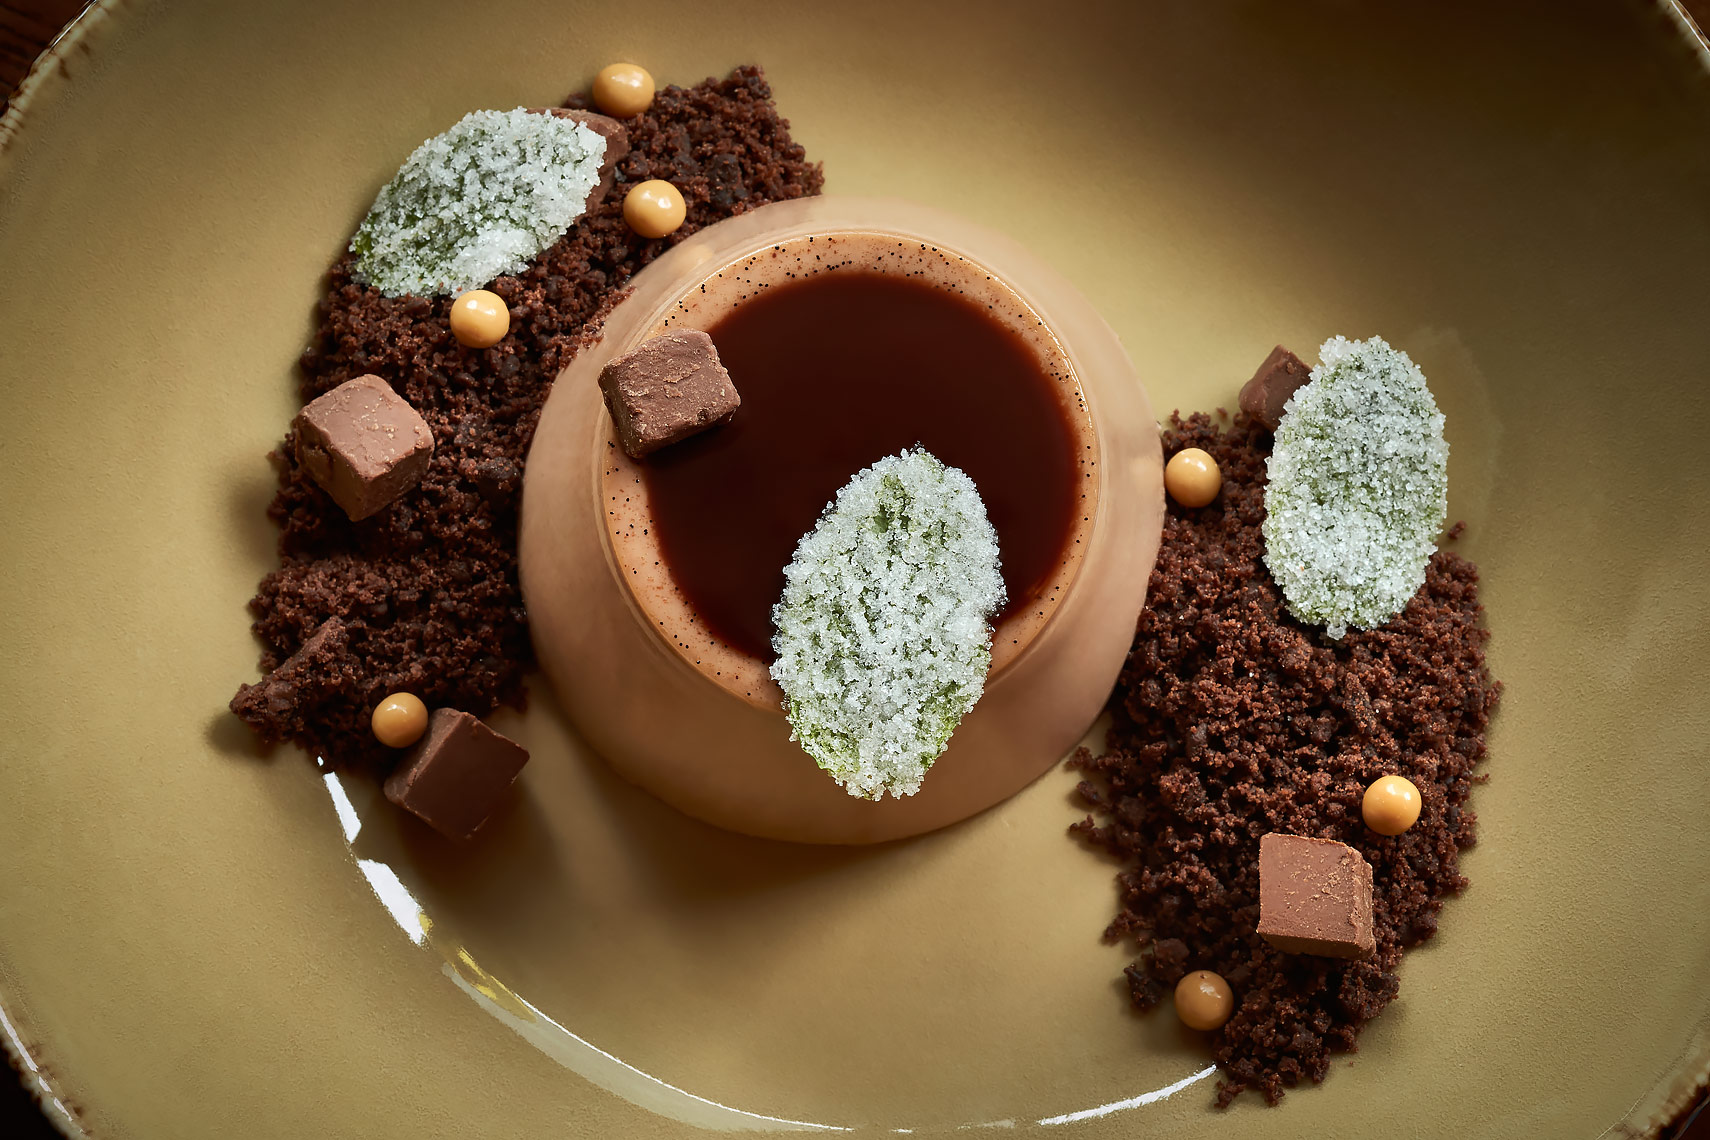 FOOD-Desserts8-Casa-Luca-Chocolate-Mousse